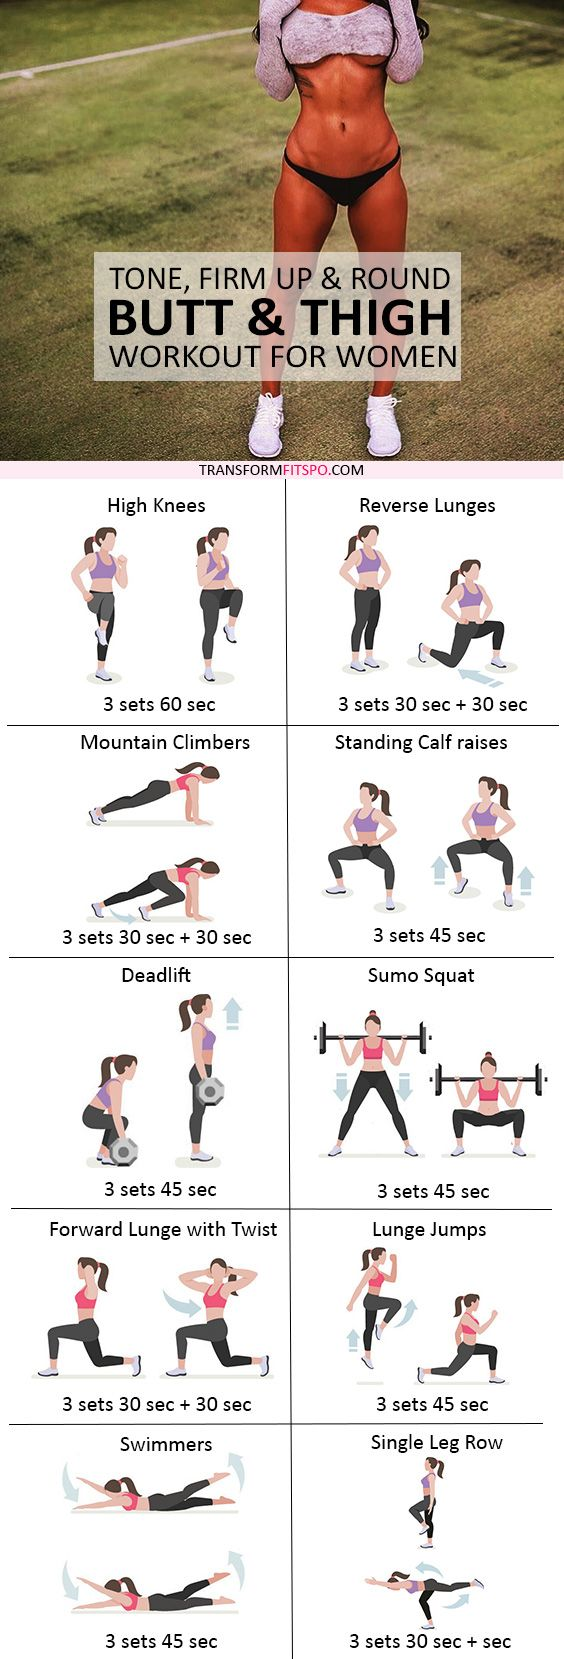 Follow Personal Trainer @SuperDFitness Now!  Repin and share if this workout helped you get sexy thighs and a big bum! Follow Pinterest.com/SuperDFitness Today!